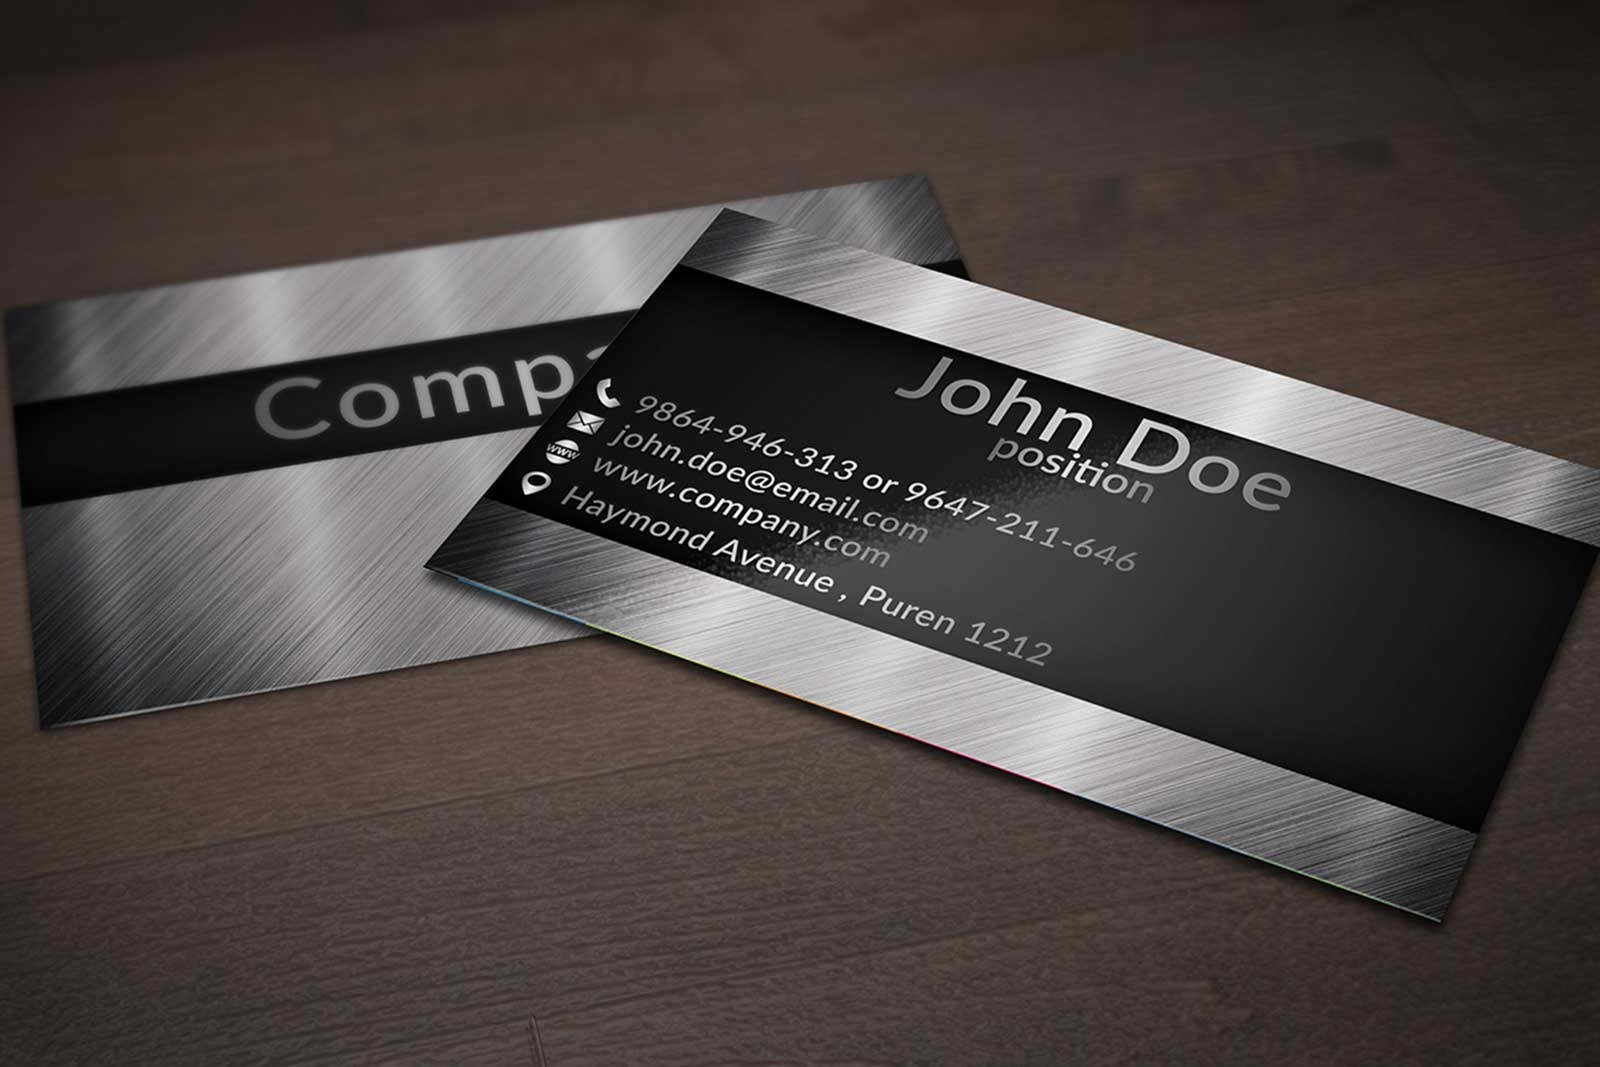 40 unique stylish psd corporate business card designs for free creative business card design on brushed background wajeb Image collections